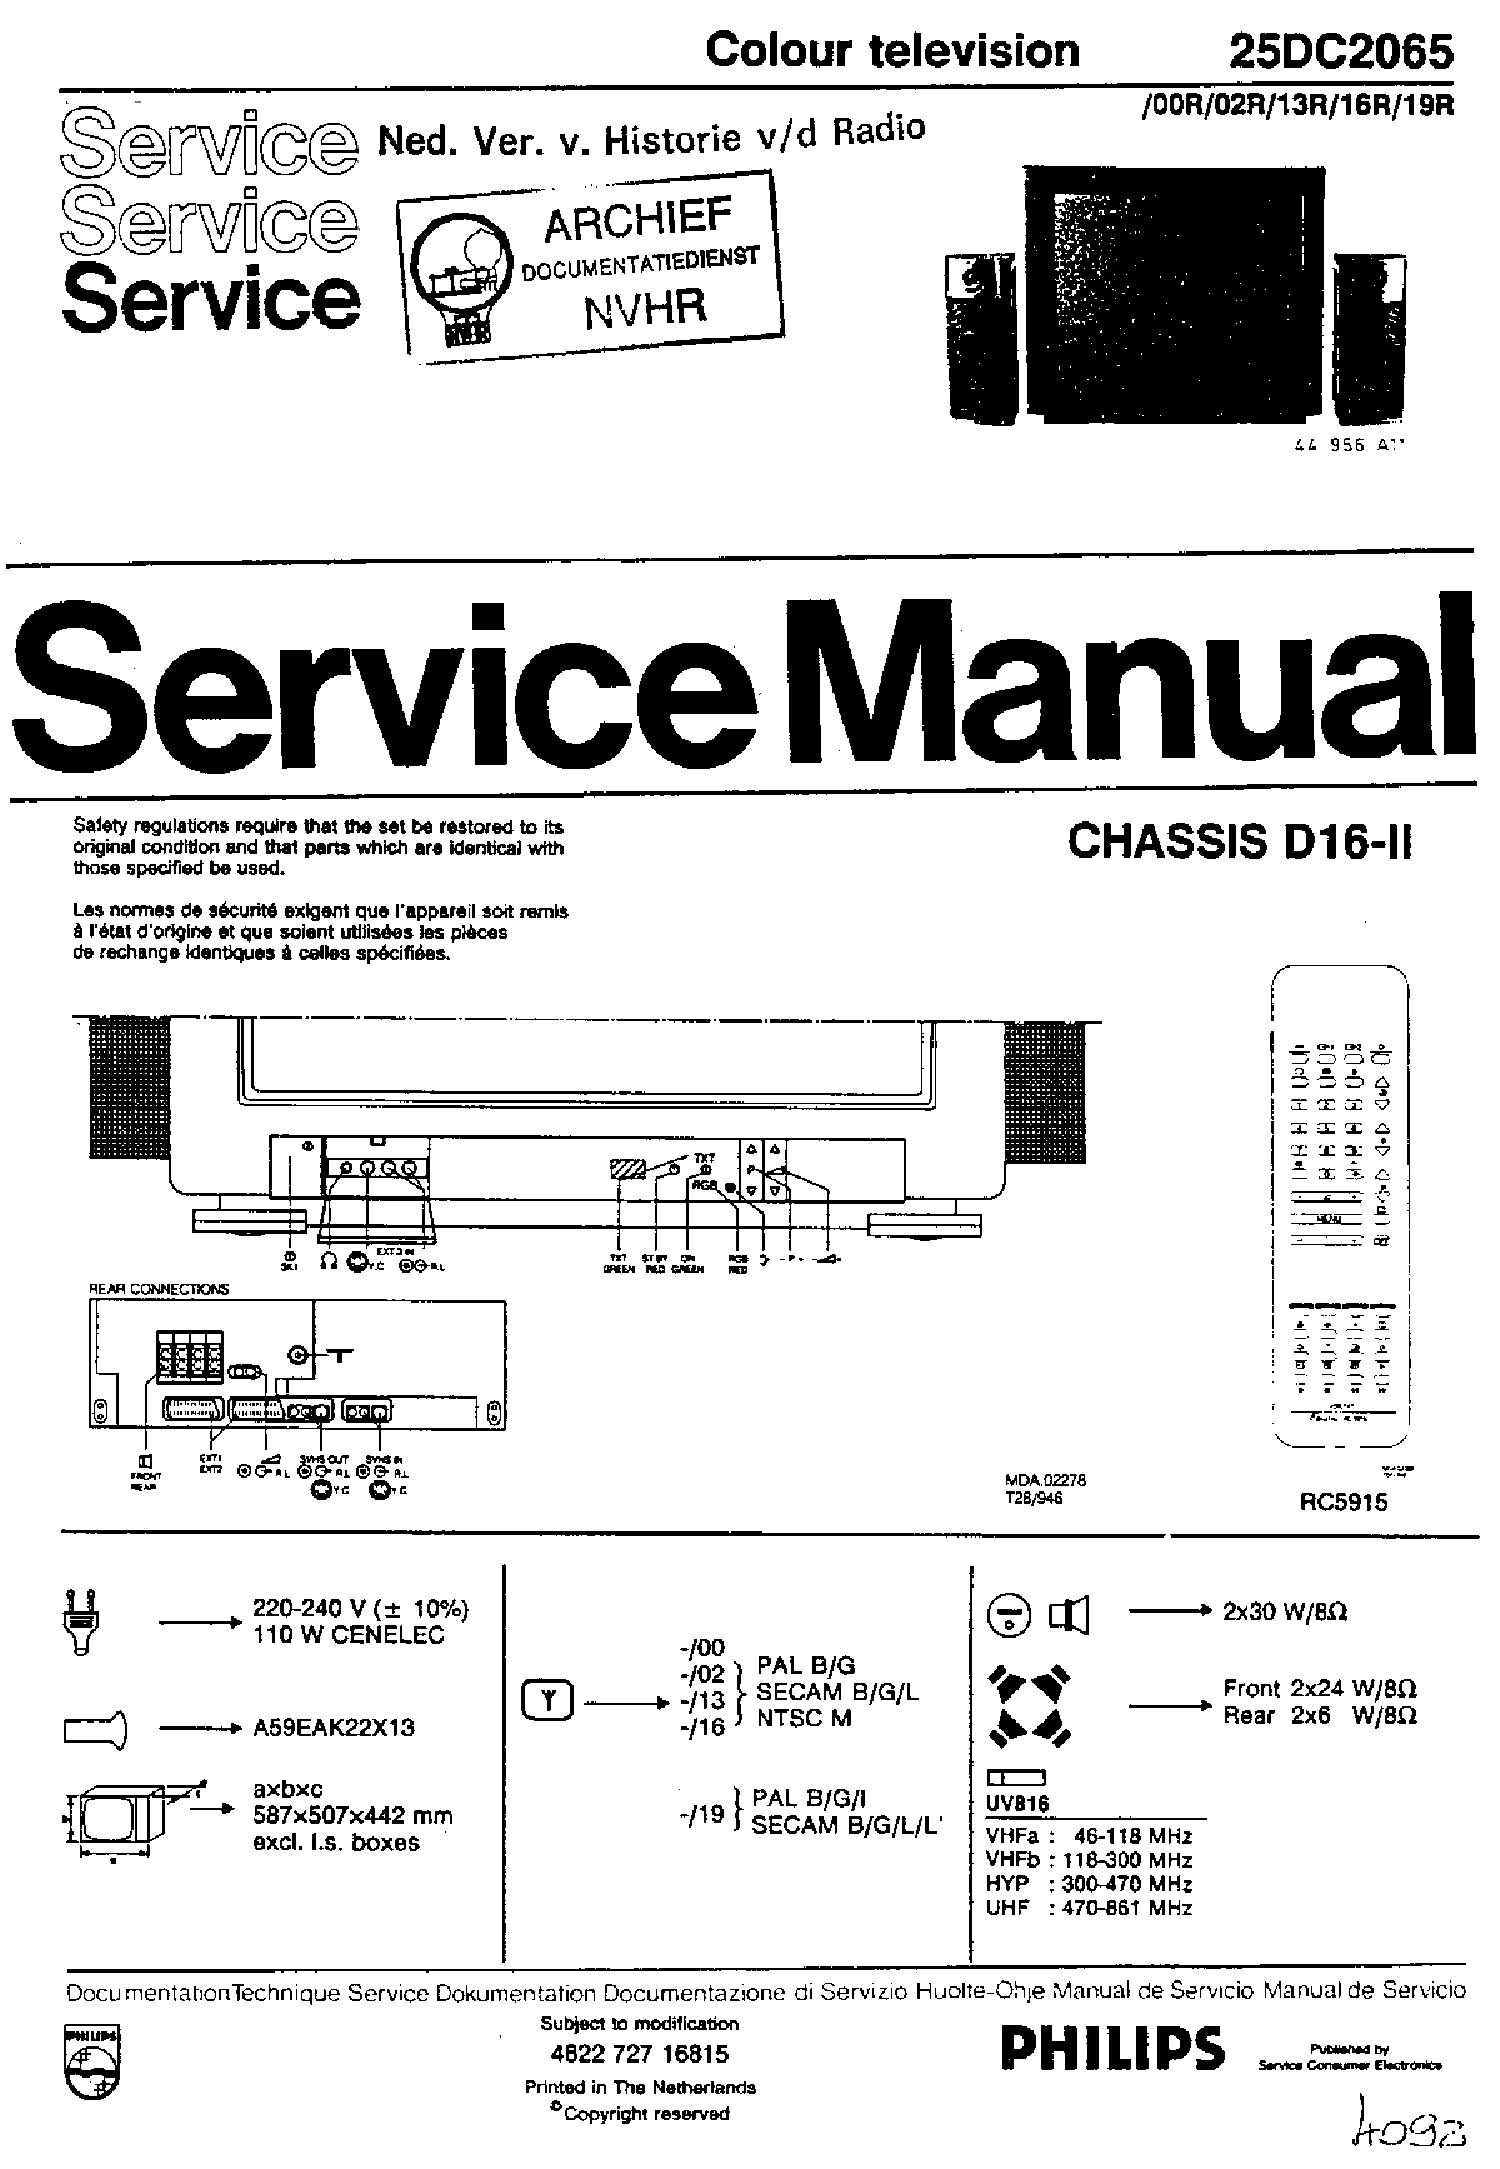 PHILIPS A10E-AA CHASSIS Service Manual download